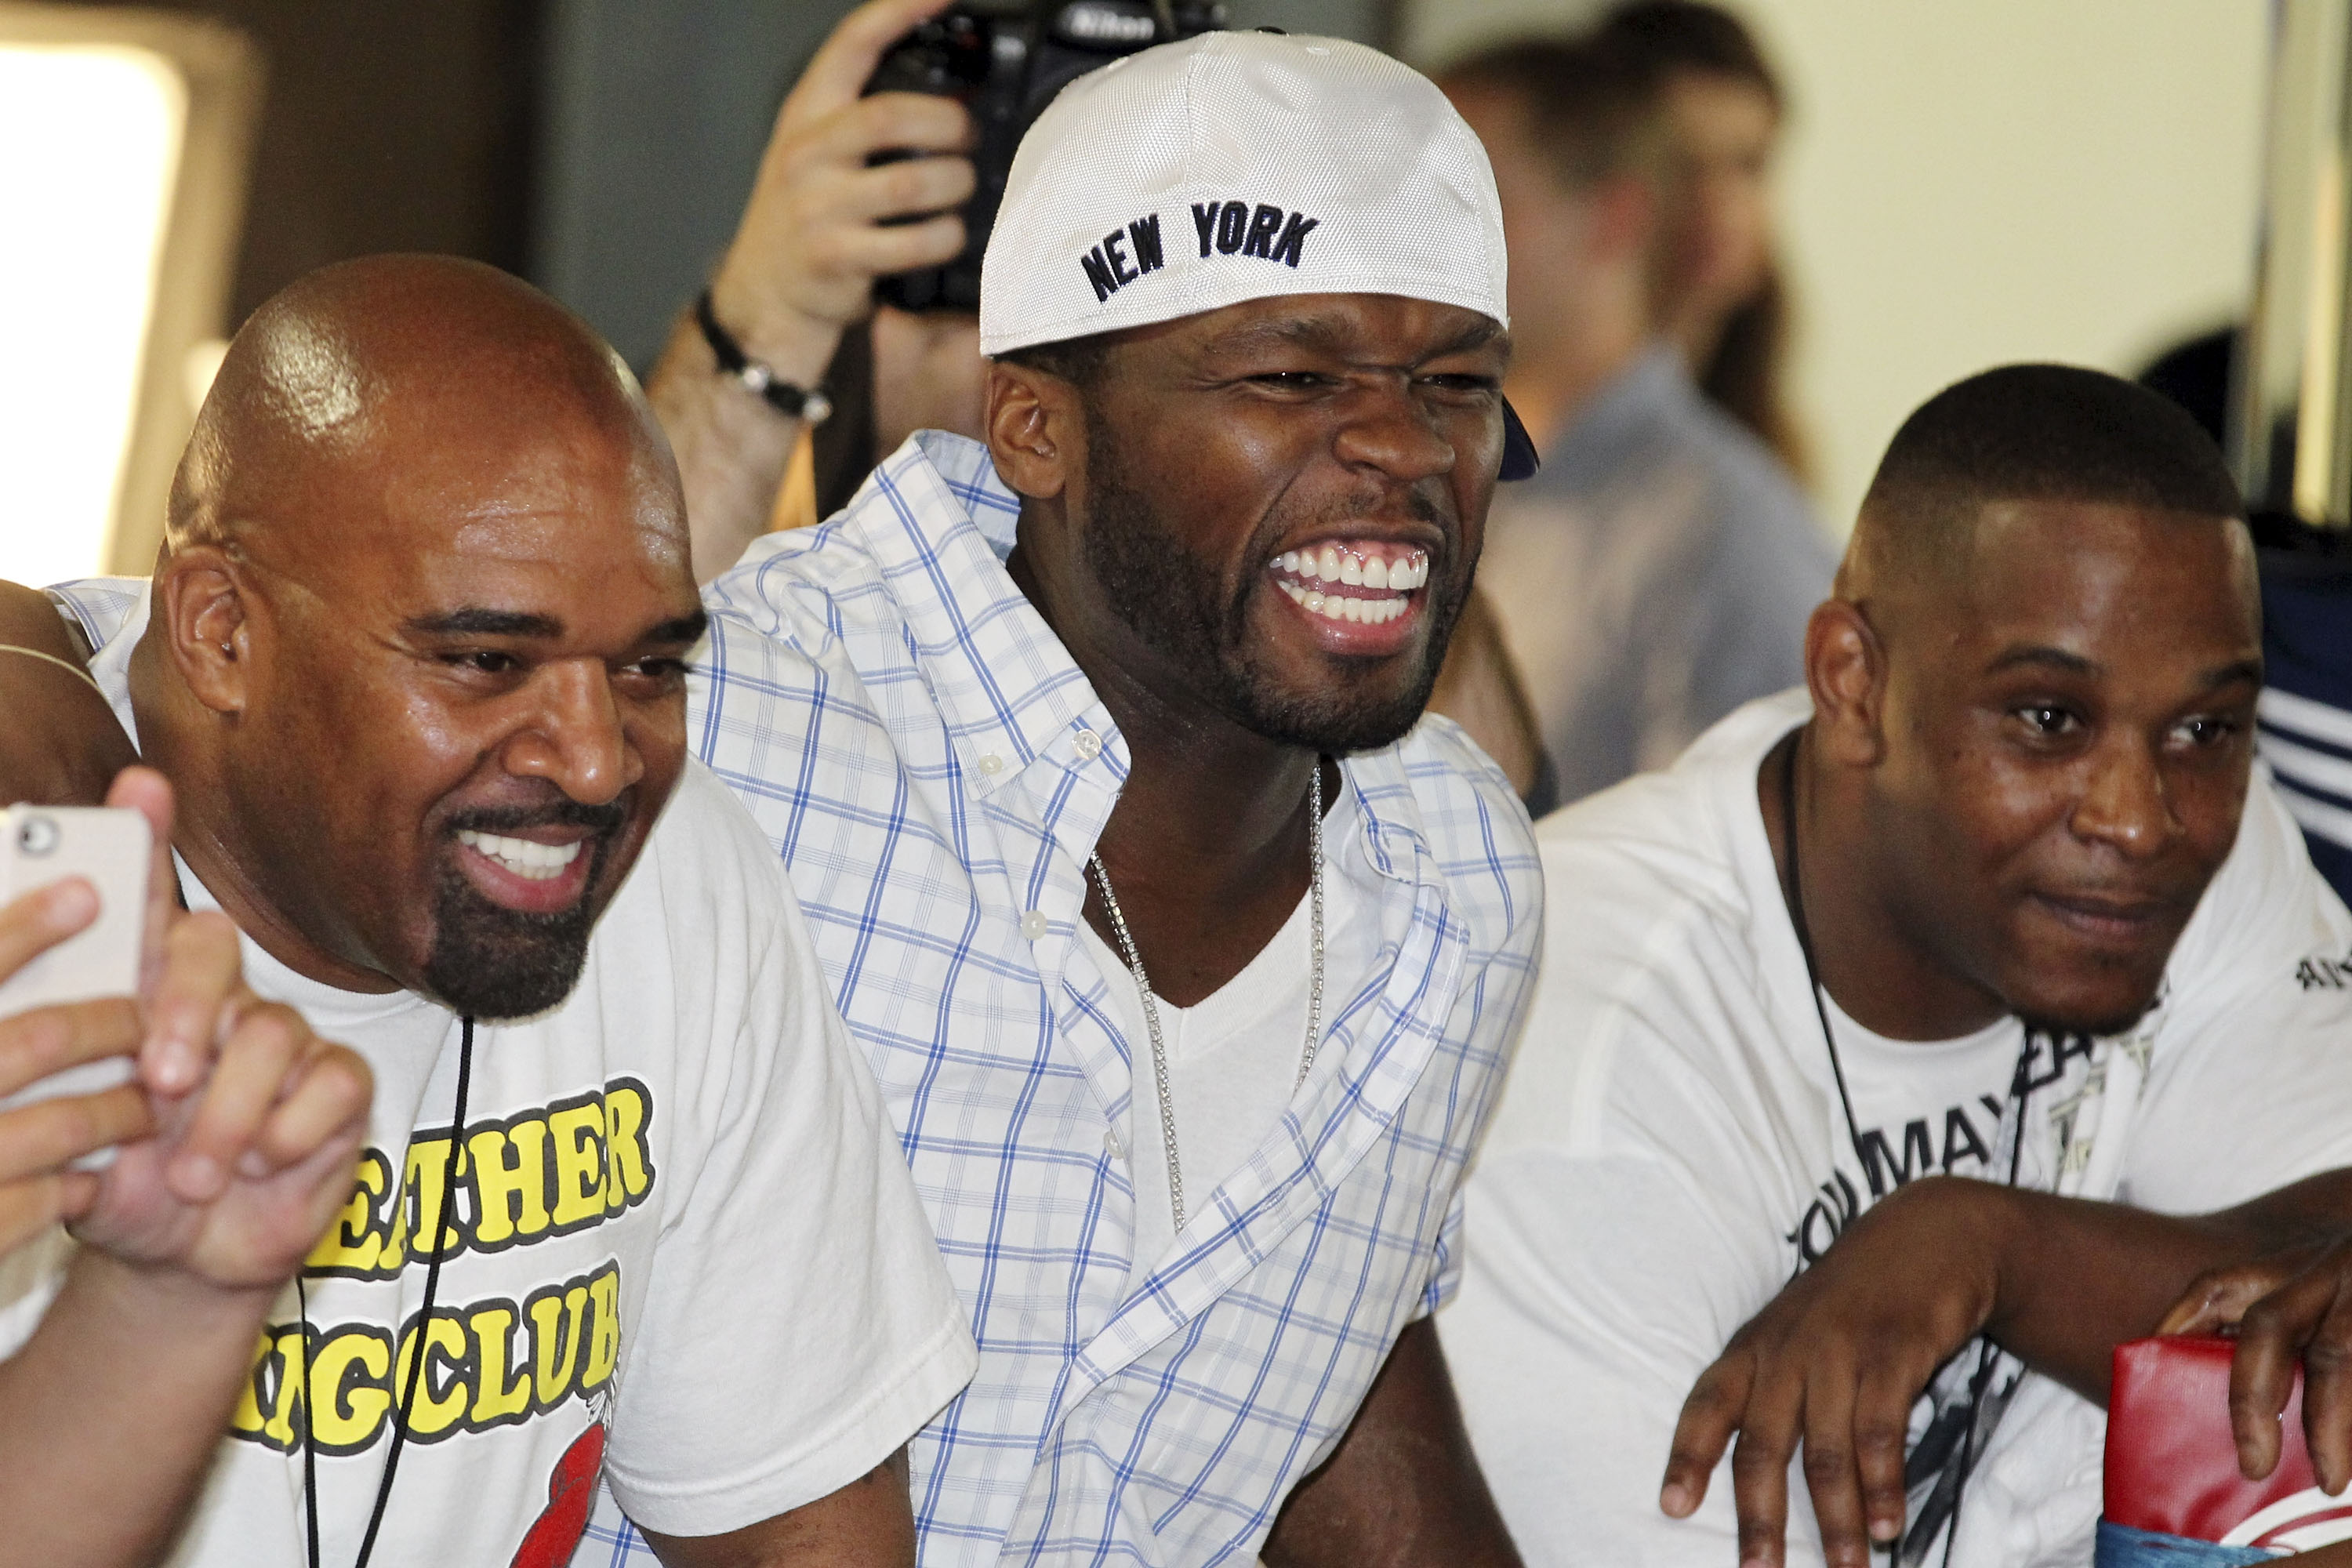 50 Cent and other members of Floyd Mayweather's posse cheer him on. (Getty)